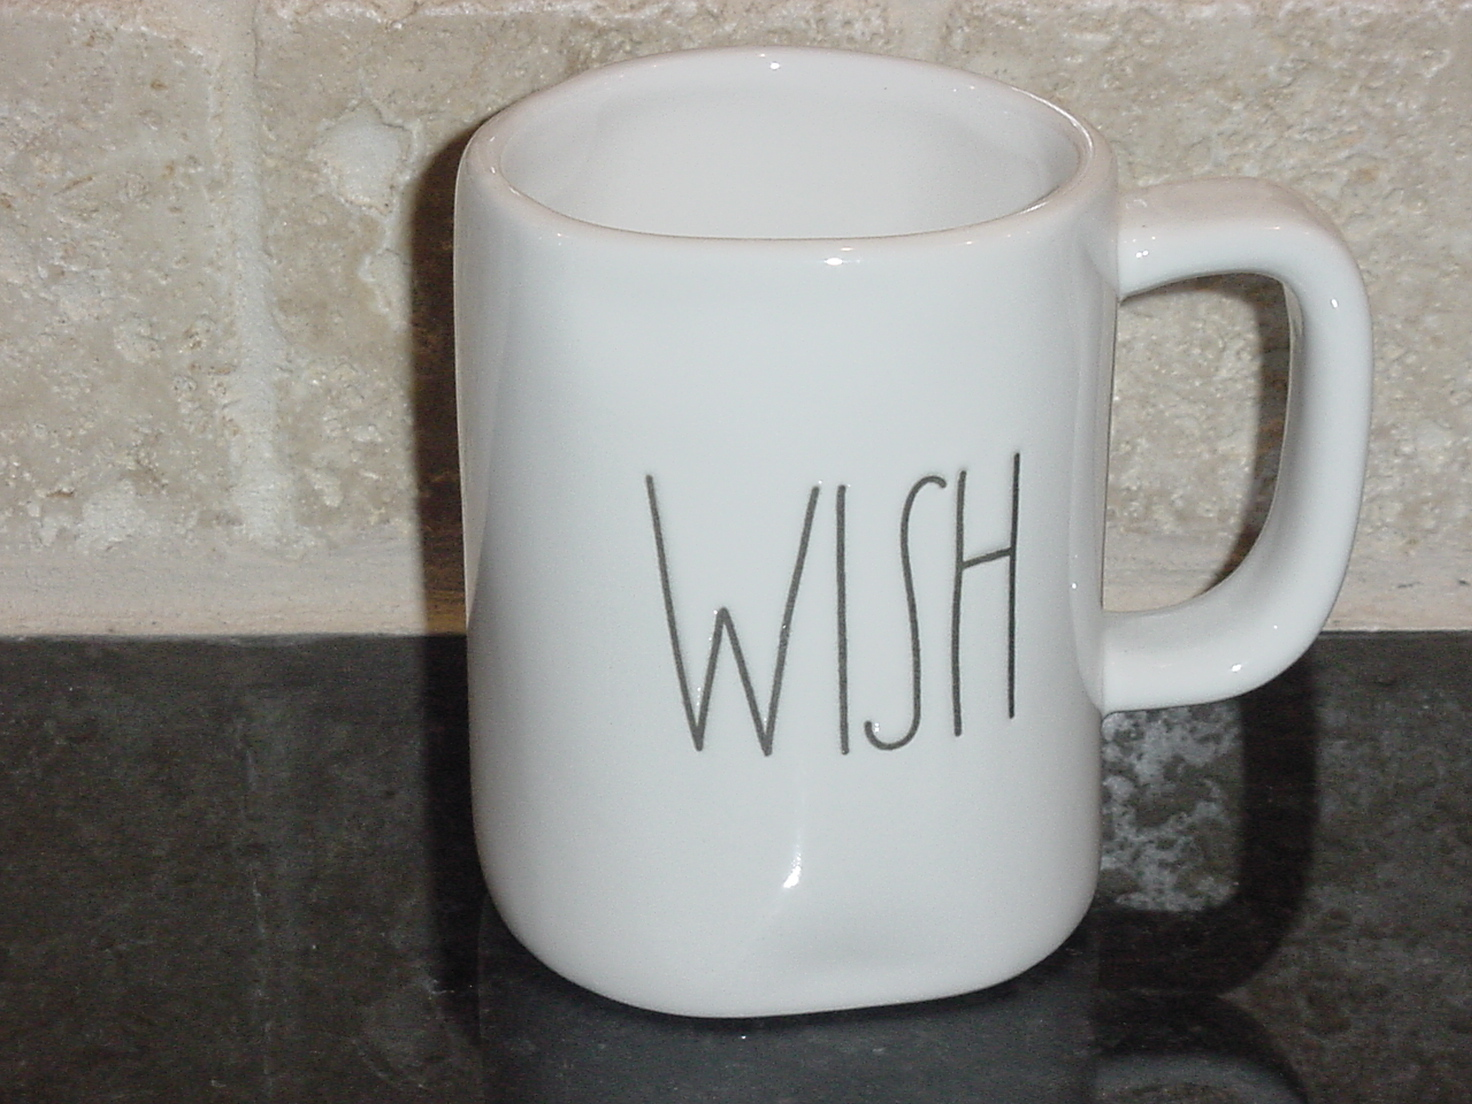 Rae Dunn WISH Mug, Ivory with Black Lettering